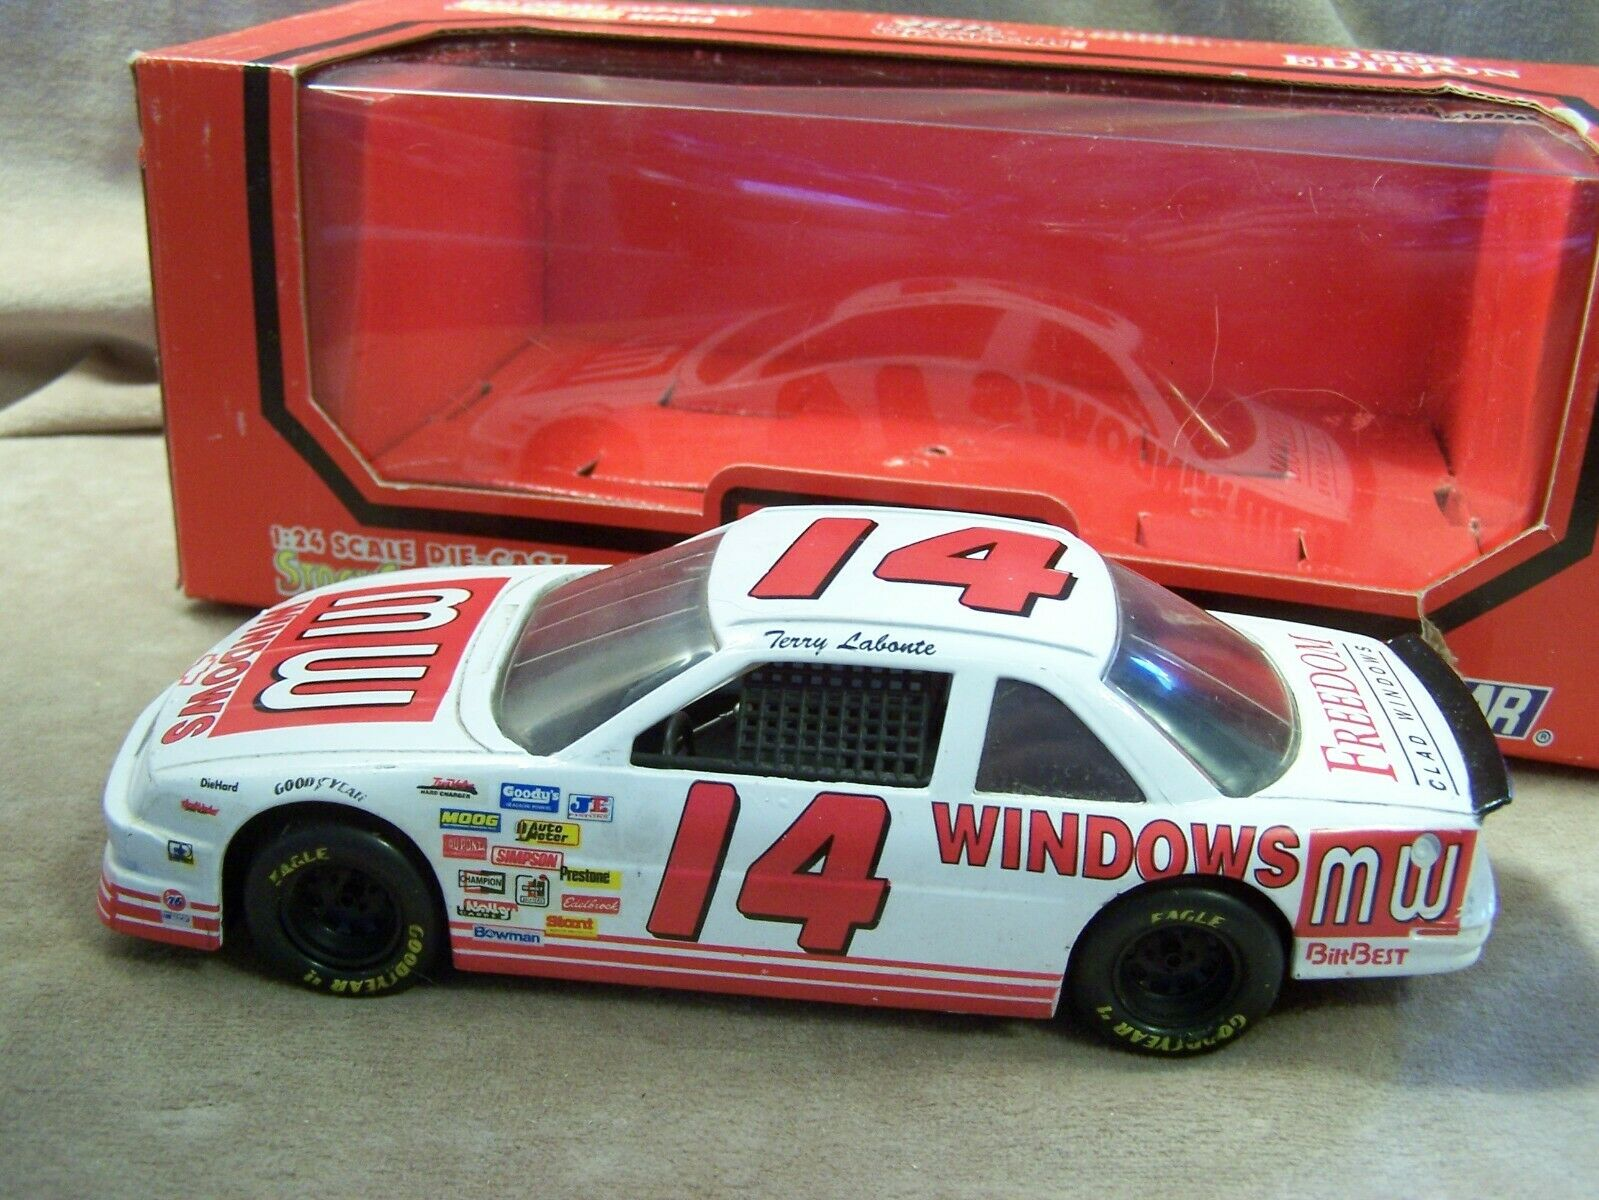 Terry Labonte MW Windows Monte Carlo 1 24 Die Cast Car from Racing Champions